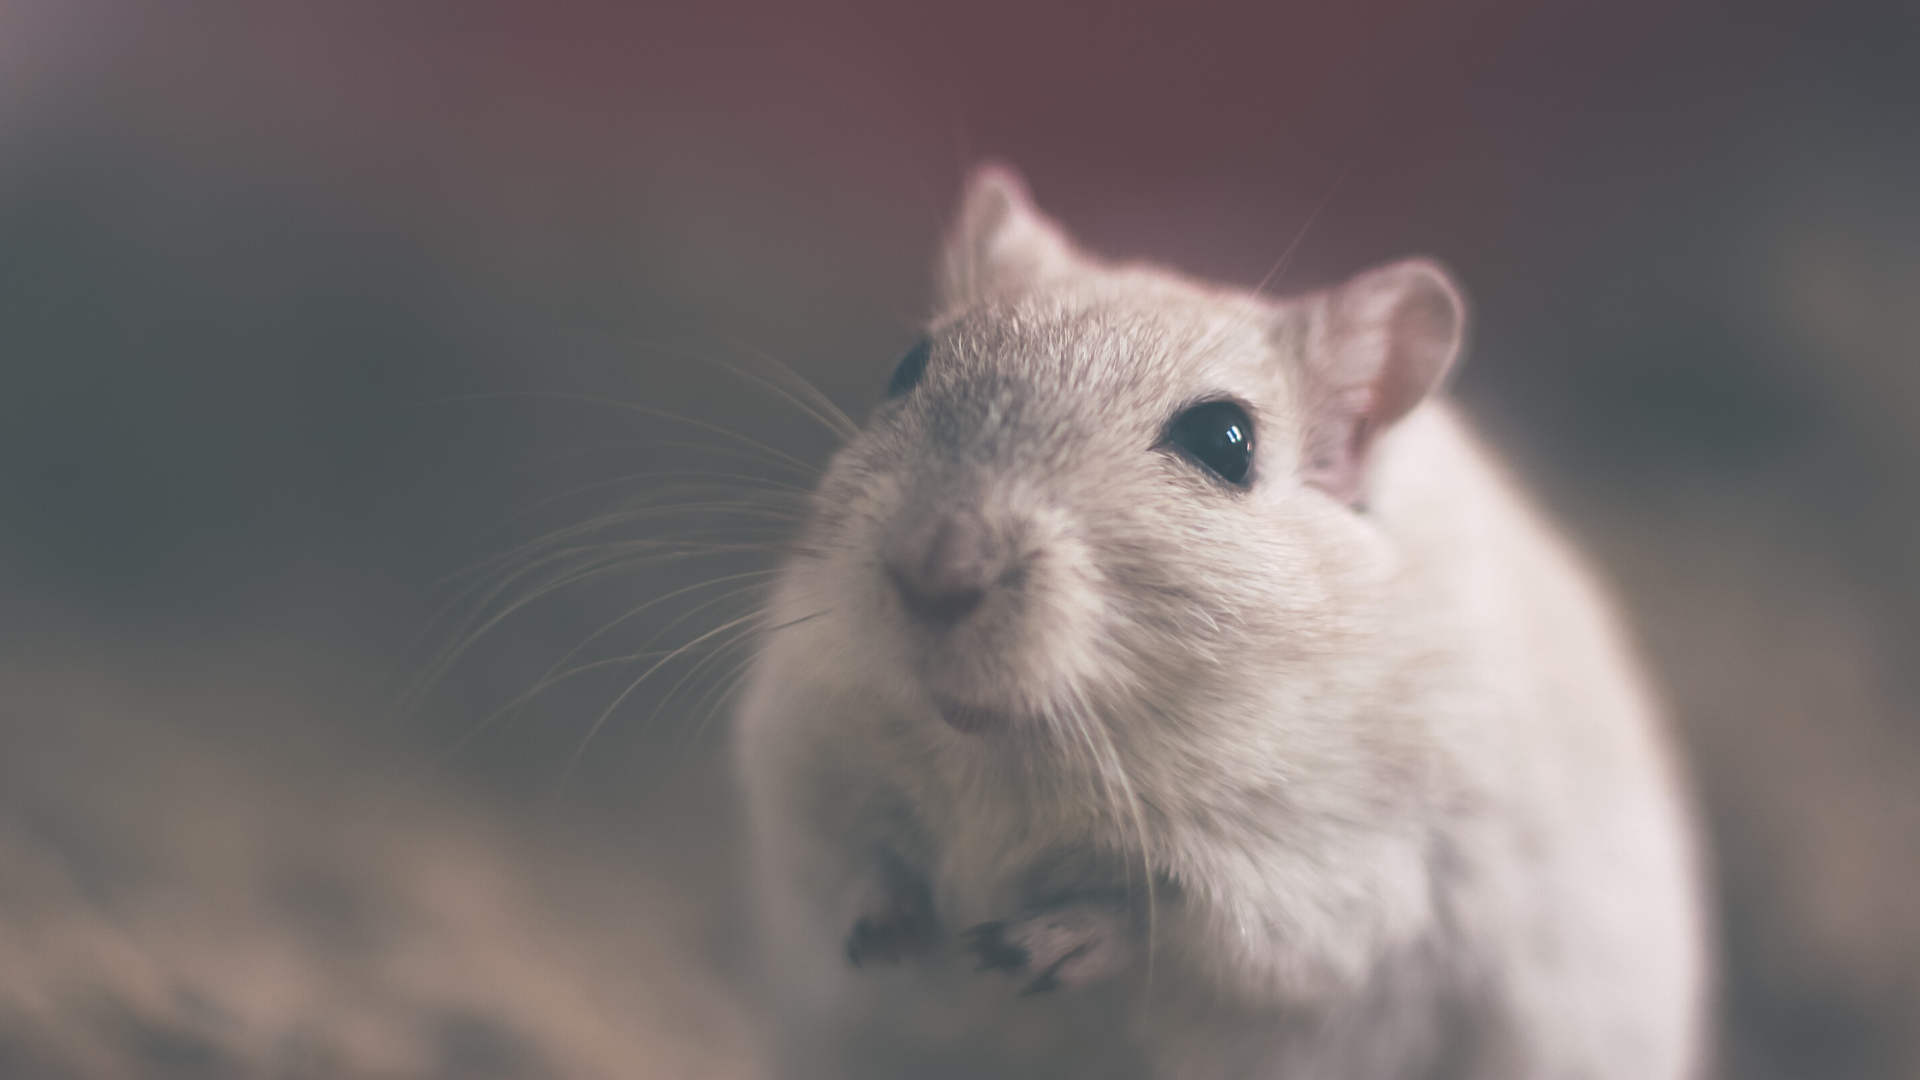 A mouse, small and grey, looks into the camera